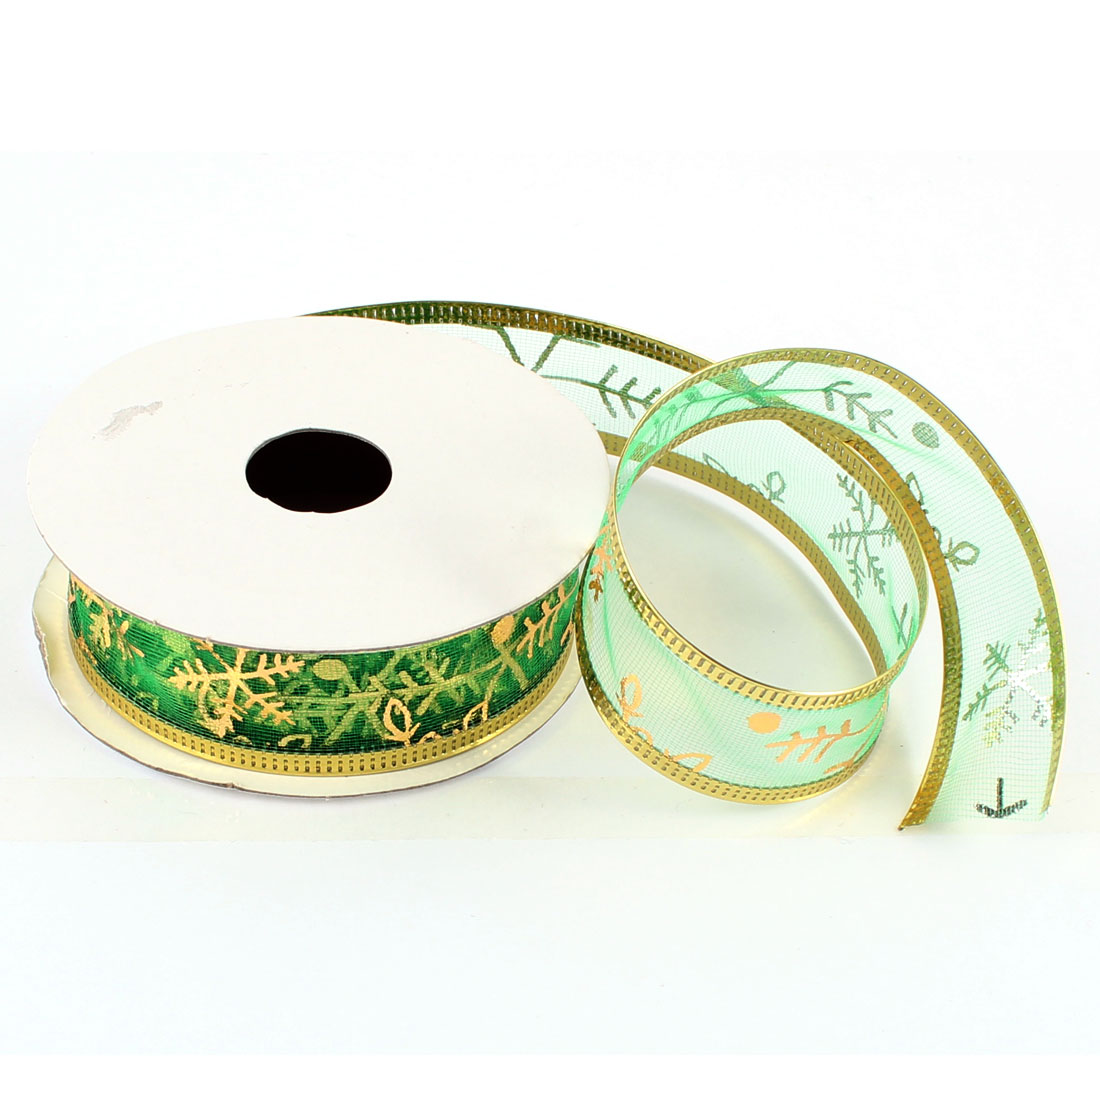 Xmas Ornament Snowflake Pattern Xmas Ribbon Roll Green Gold Tone